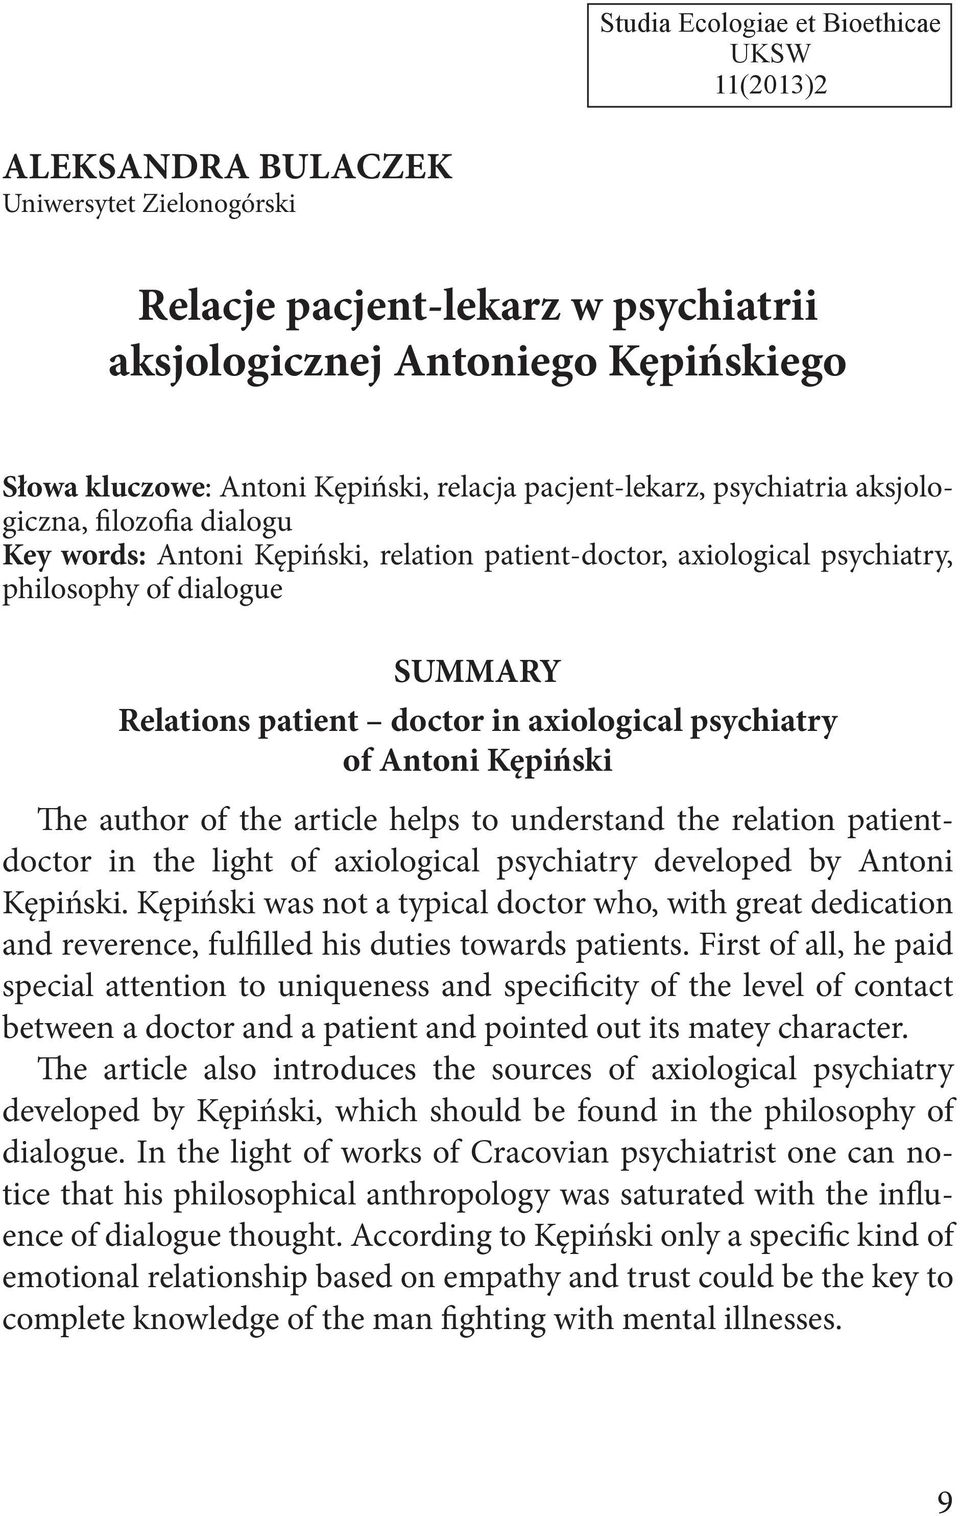 doctor in axiological psychiatry of Antoni Kępiński The author of the article helps to understand the relation patientdoctor in the light of axiological psychiatry developed by Antoni Kępiński.